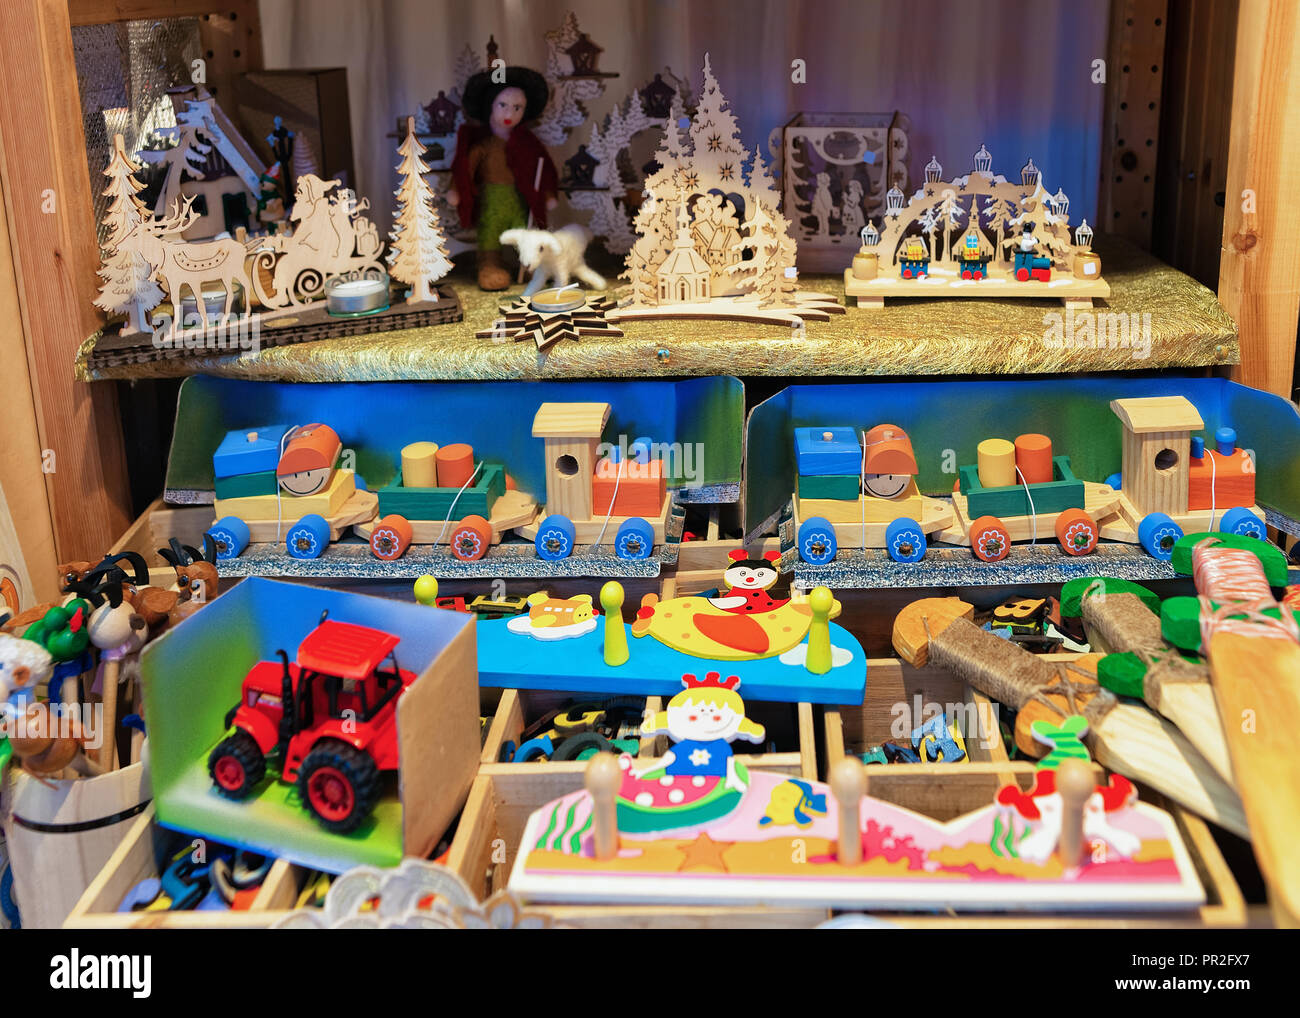 Lego Weihnachtsmarkt.Wooden Toys At Christmas Market At Charlottenburg Palace In Winter